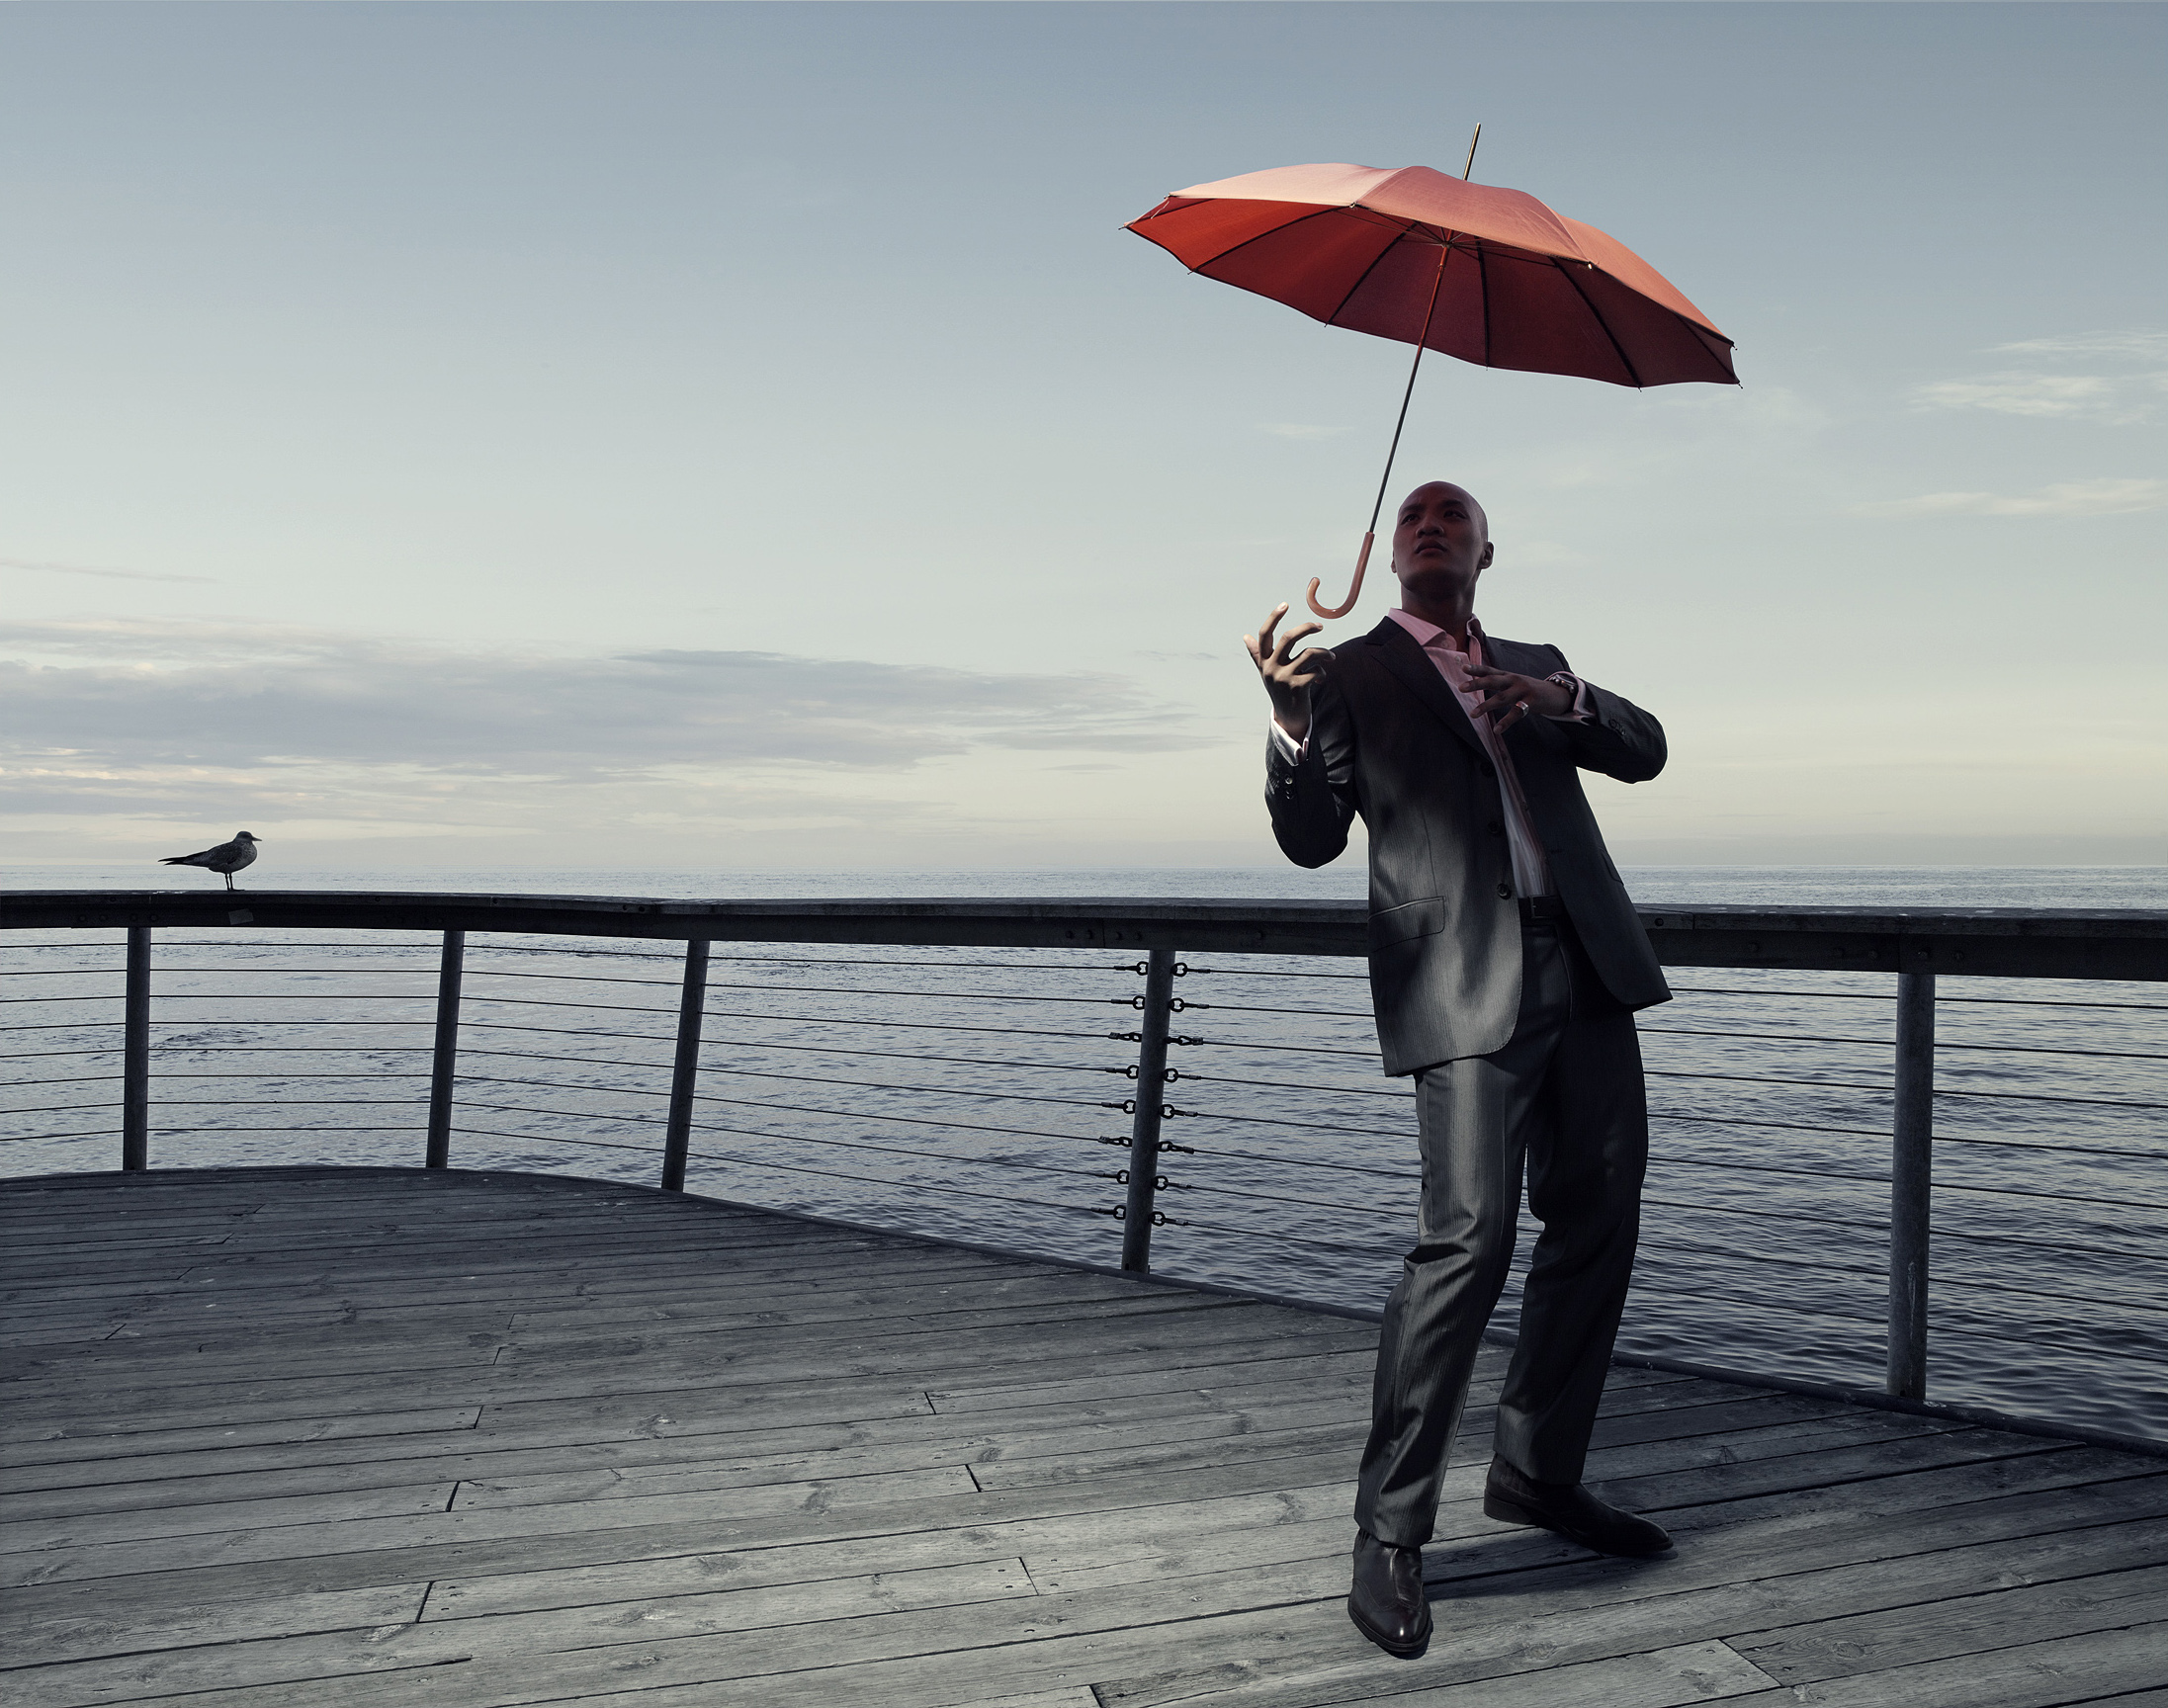 Man with a Red Umbrella